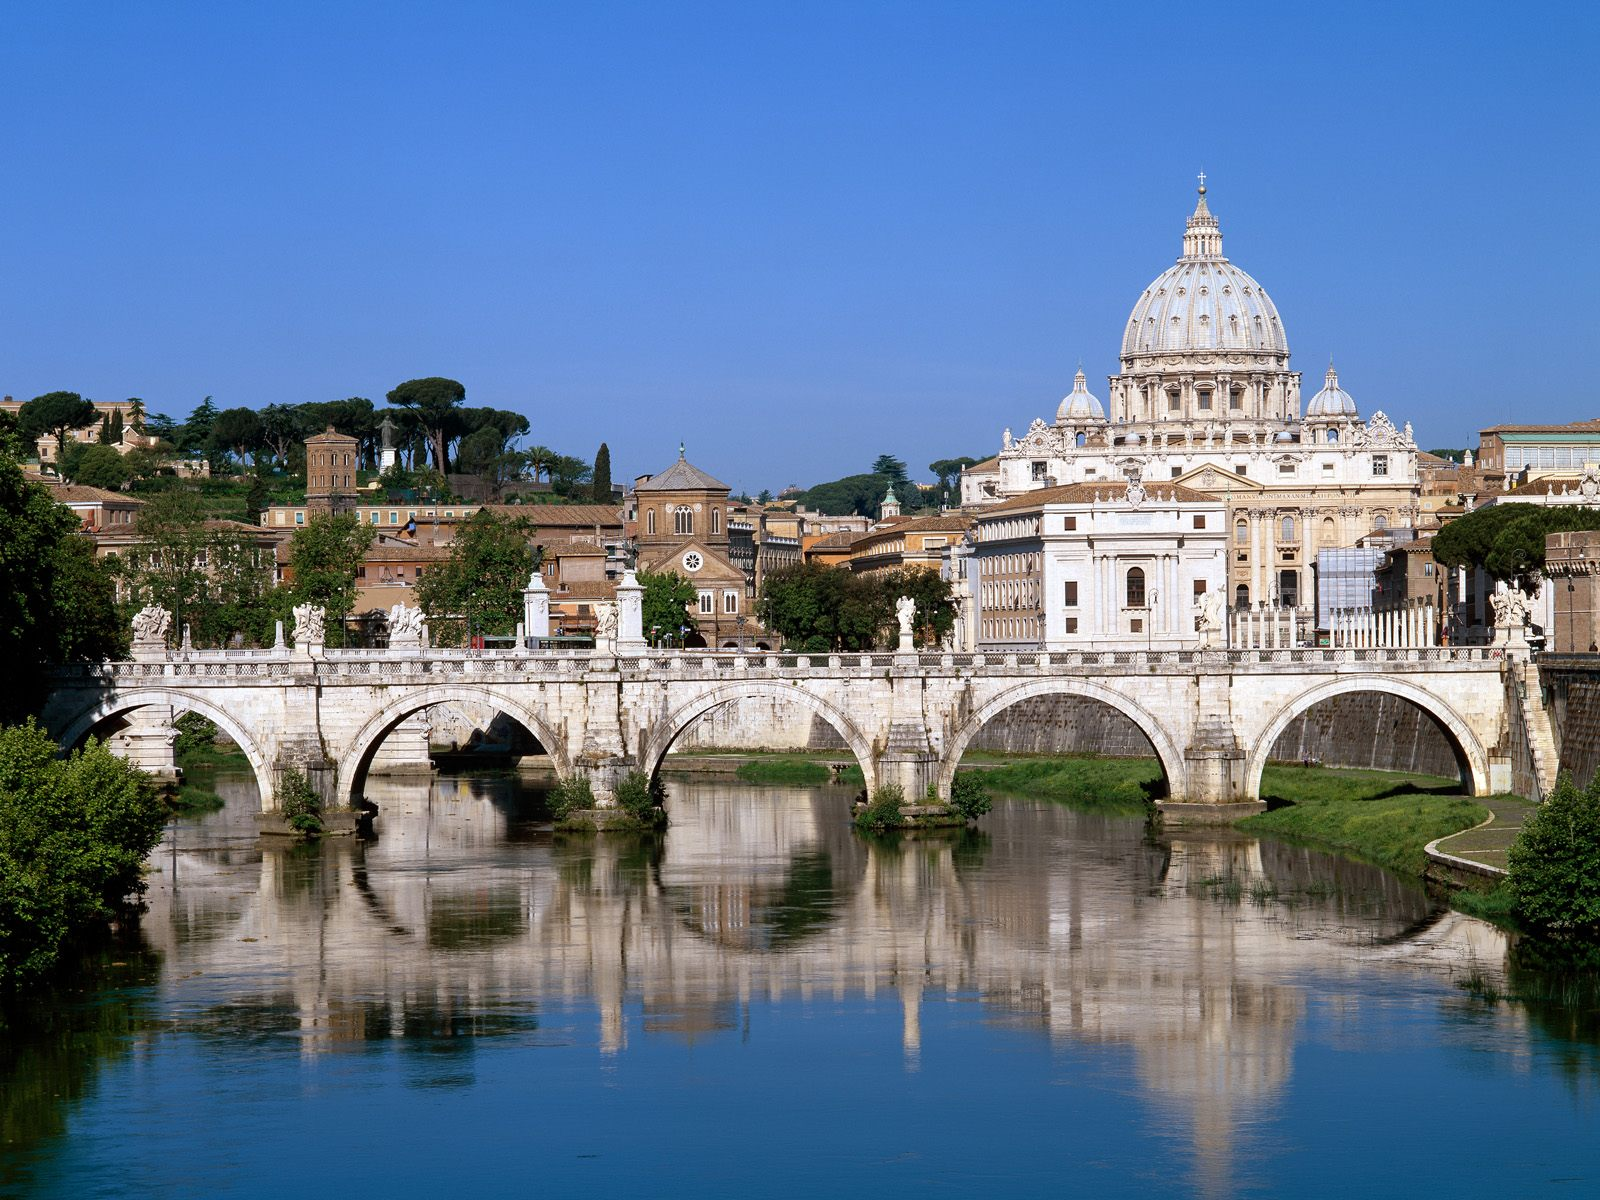 Best Roma Landscape Wallpaper Android Wallpaper with 1600x1200 1600x1200